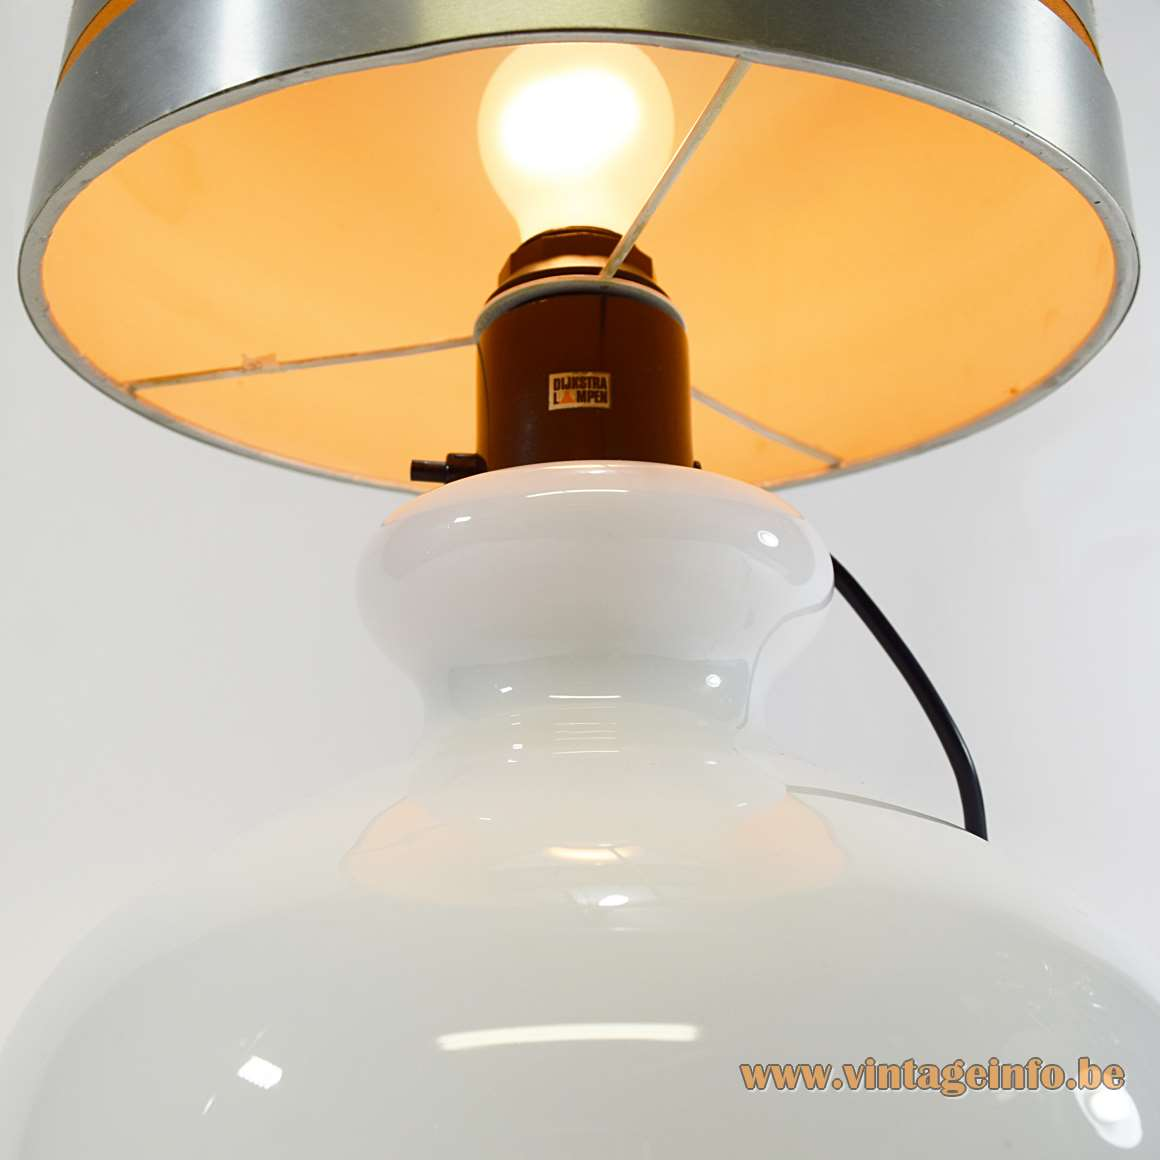 Dijkstra white opal hand blown globe glass table lamp fabric lampshade 2 light bulbs 1960s 1970s MCM